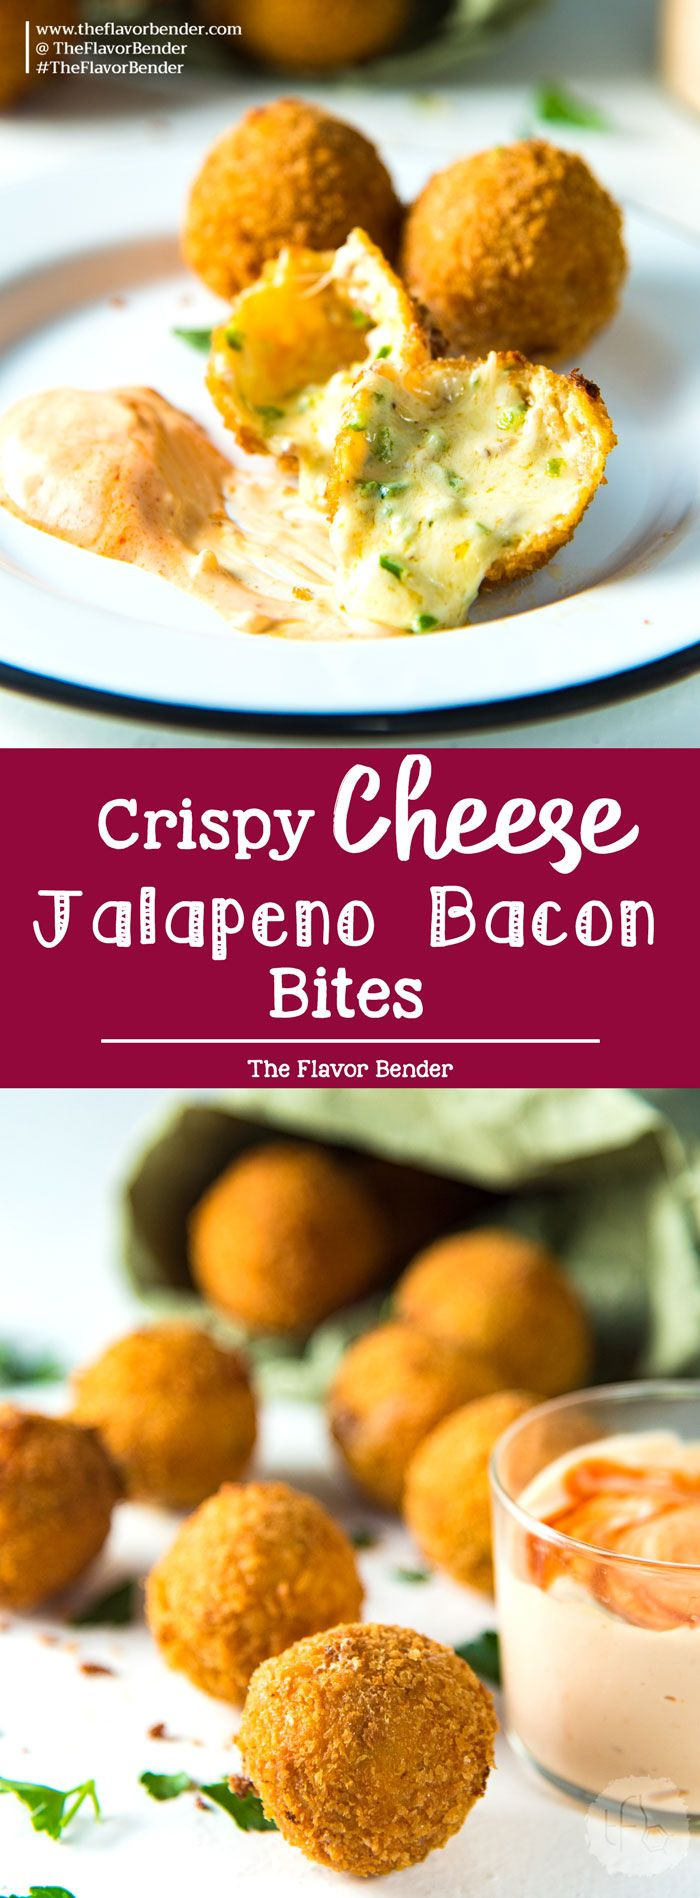 Crispy Cheese Jalapeno Bacon Bites - These creamy, crunchy, flavorful fried cheese balls are perfect for game day snacking or as any party appetizer! Like Bacon Jalapeno Poppers, but even better! #Gameday #marchmadness #appetizers via @theflavorbender